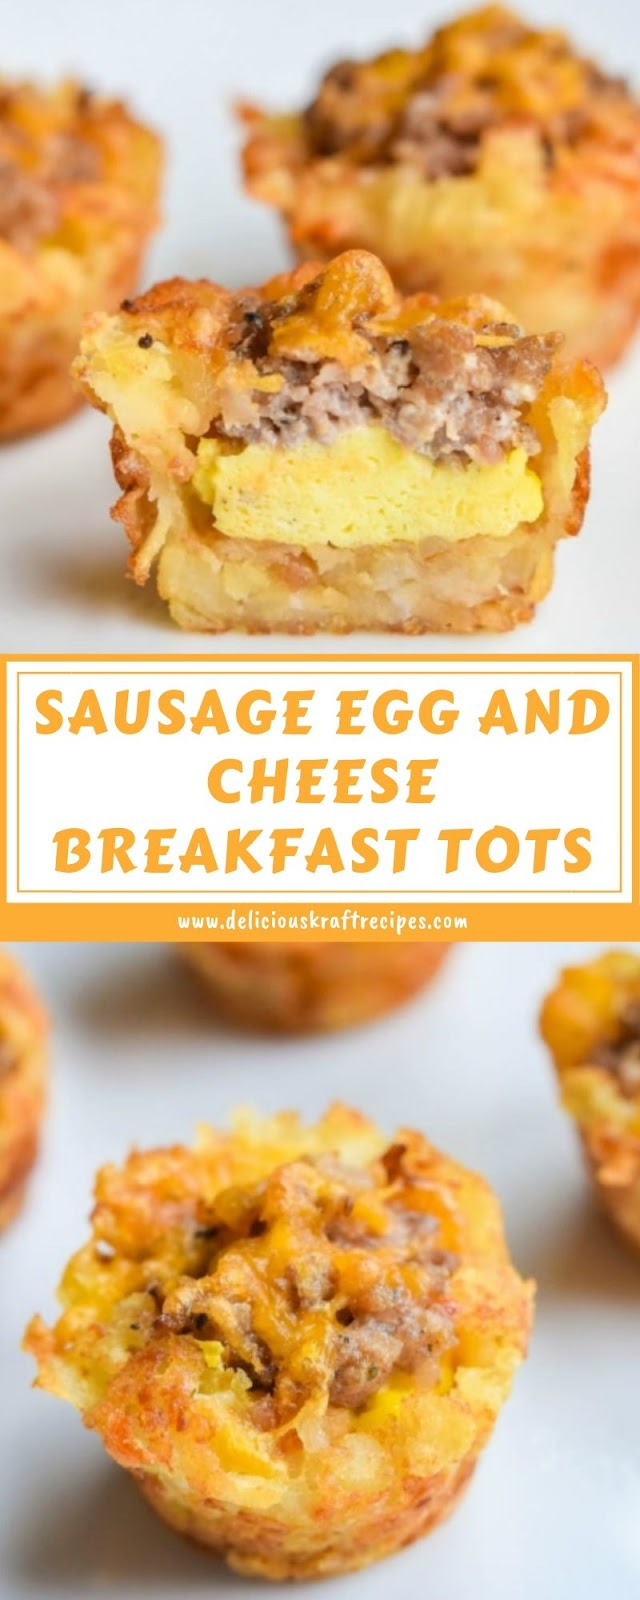 SAUSAGE EGG AND CHEESE BREAKFAST TOTS